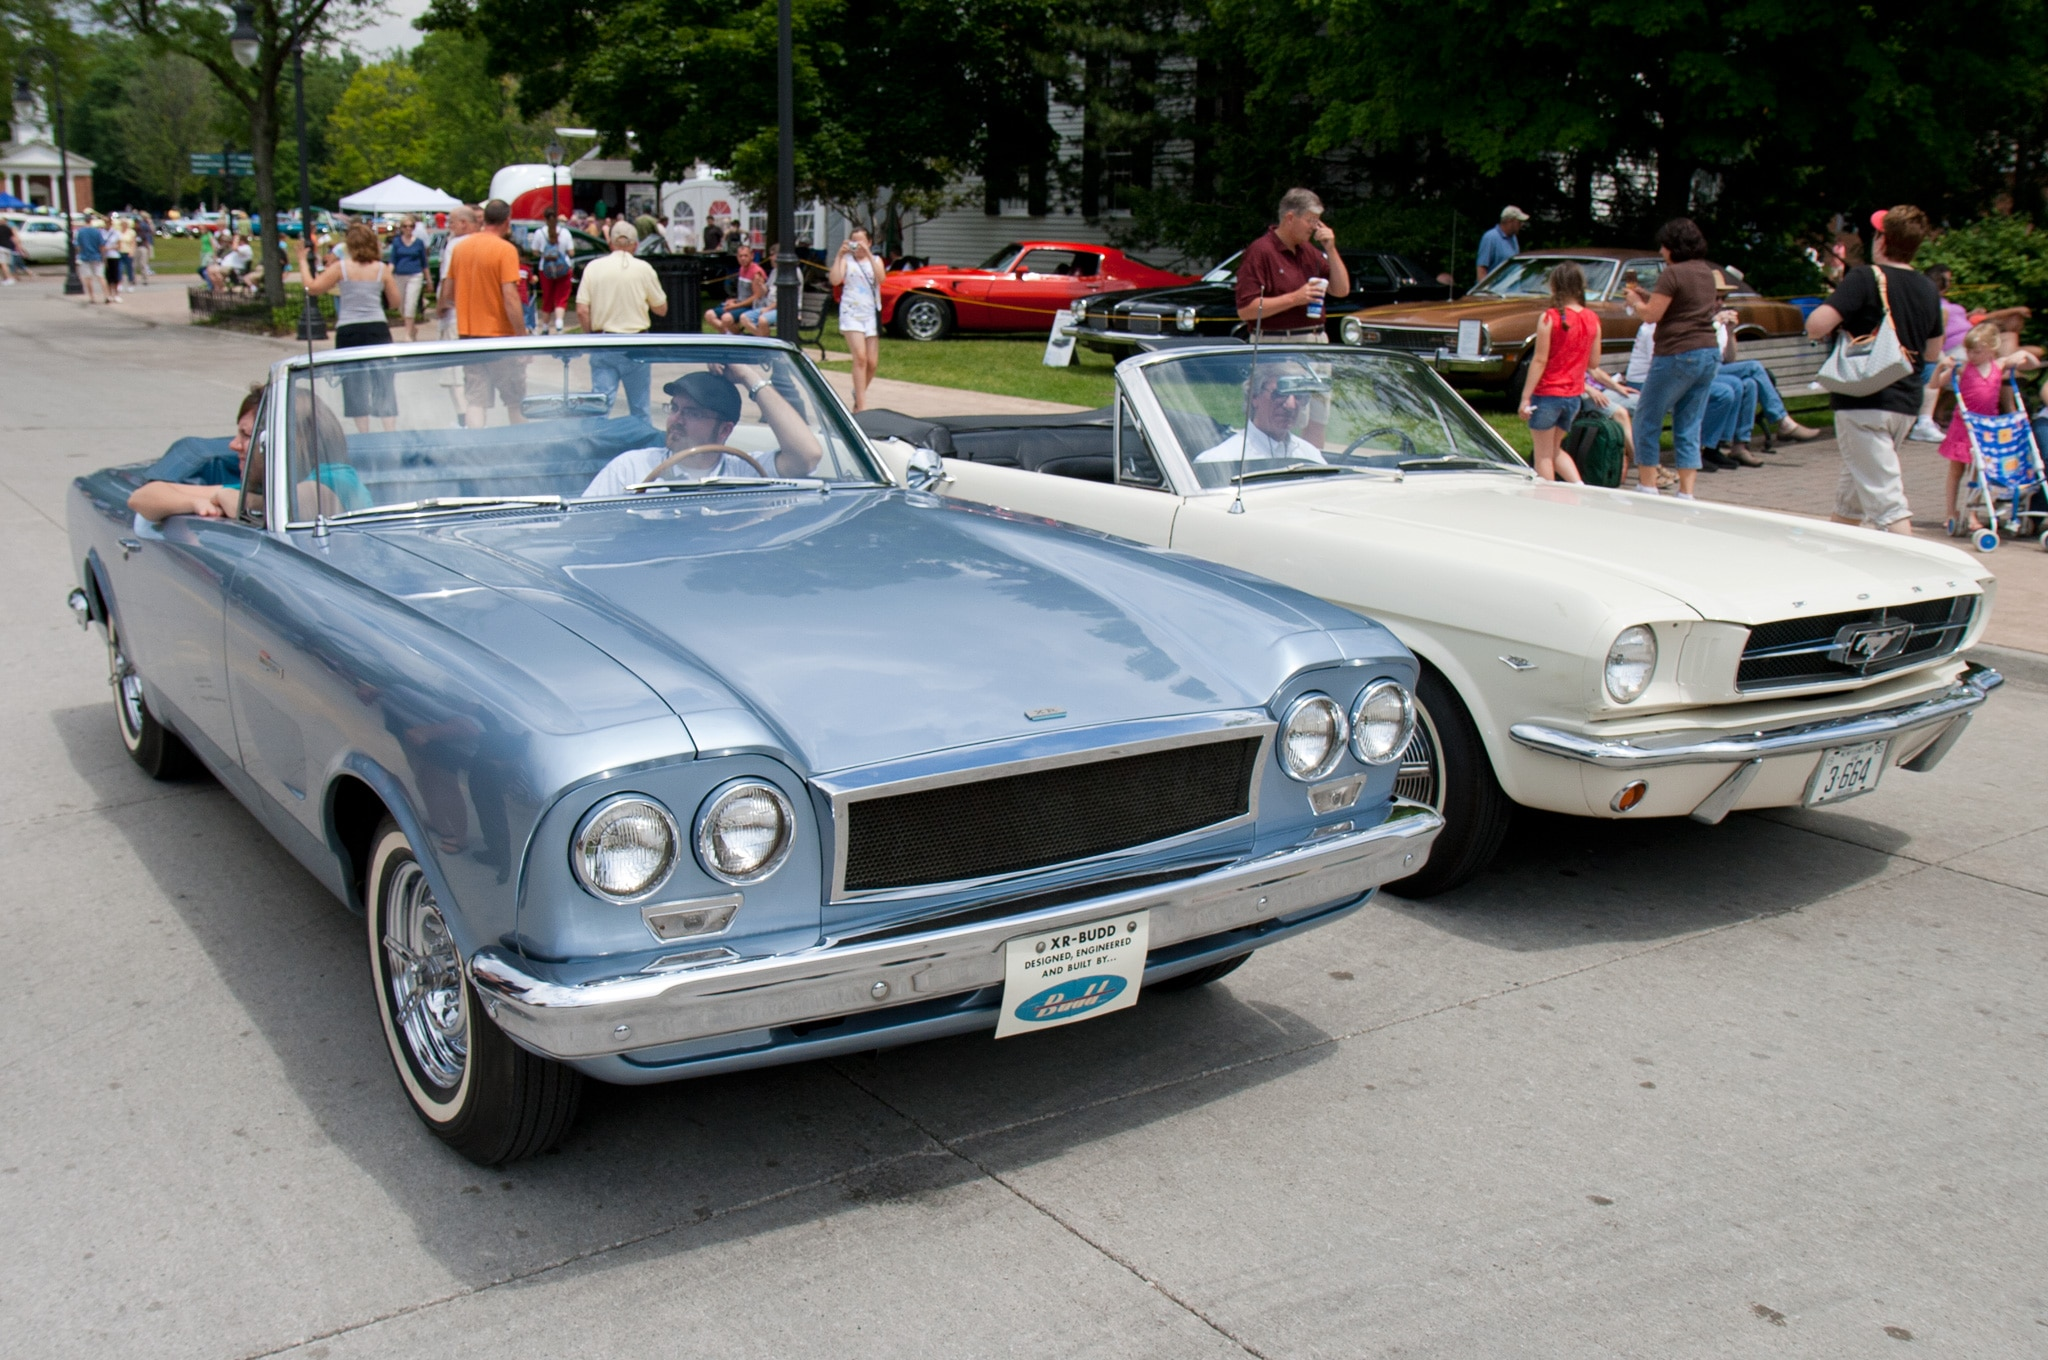 1963 Budd Xr 400 Prototype And 1965 Ford Mustang Convertible Front Three Quarters View2